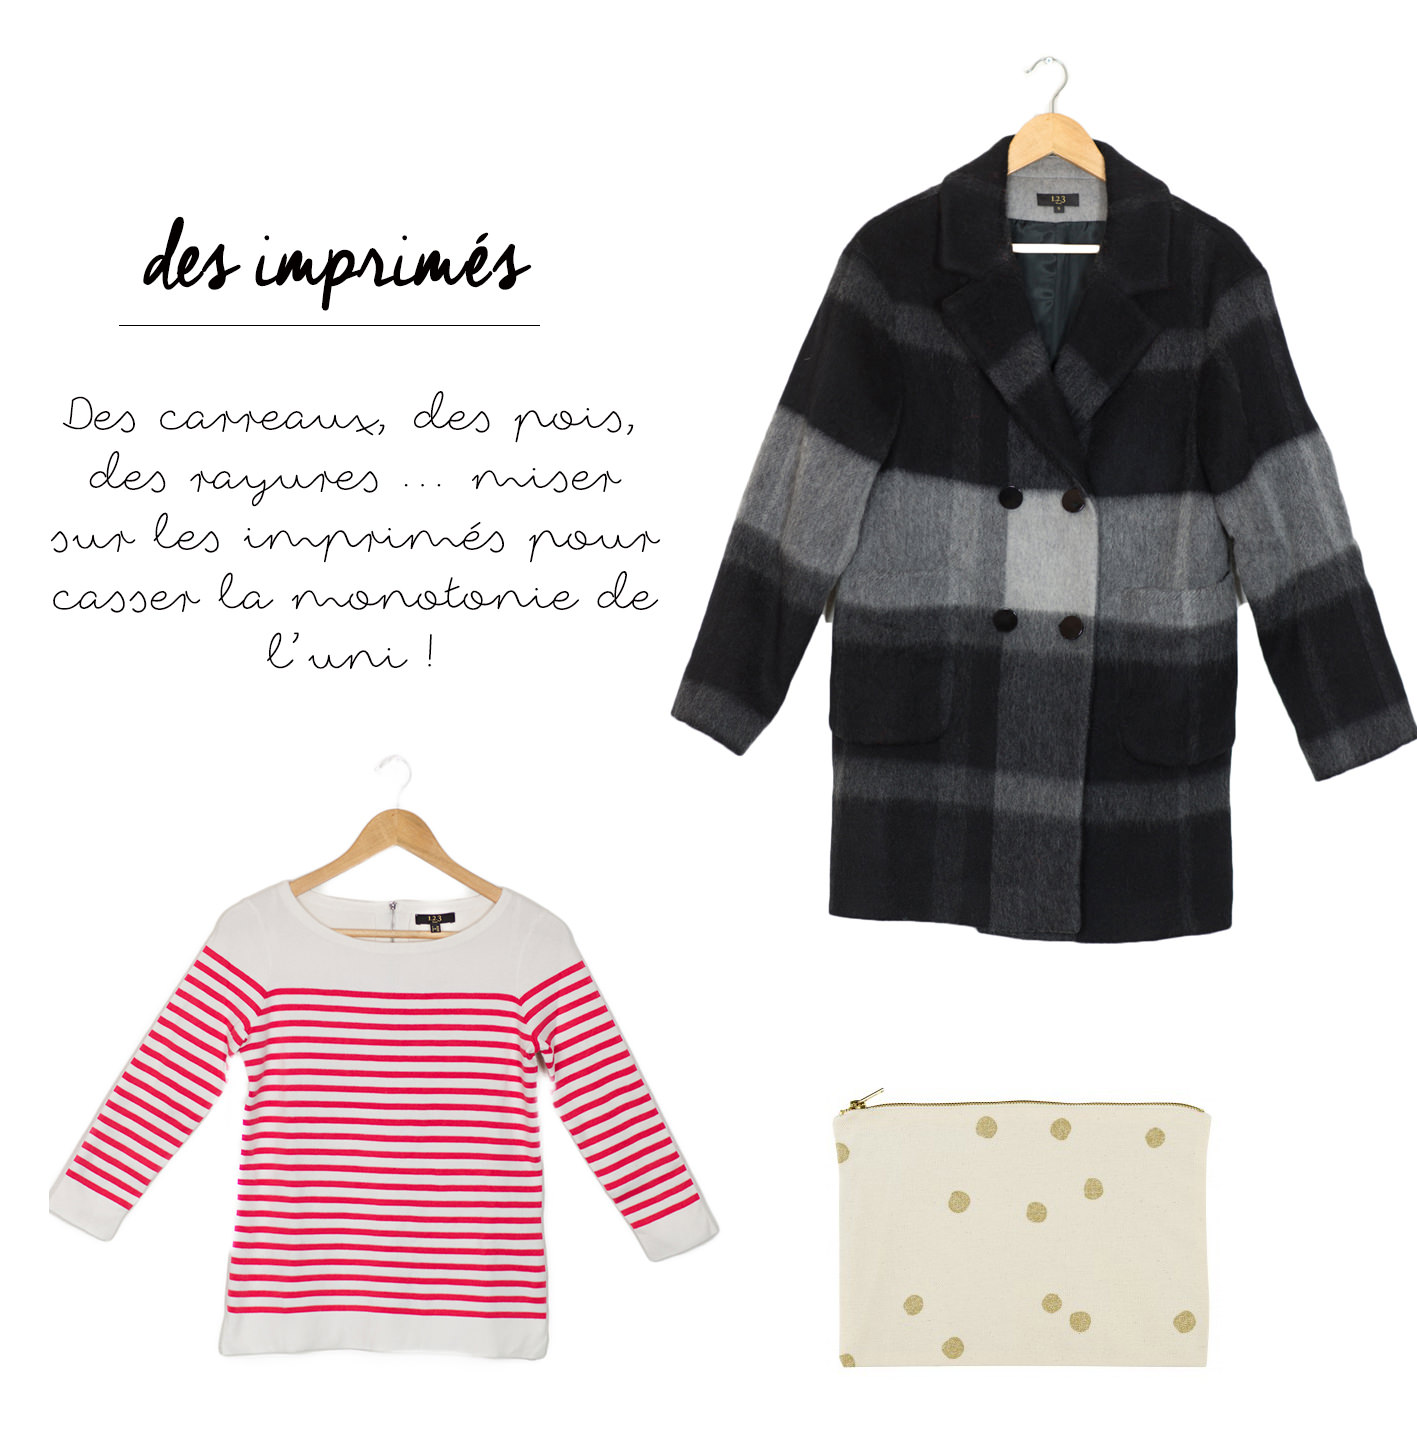 Blog-Mode-And-The-City-Lifestyle-wishlist-soldes-2015-1-2-3-paris03